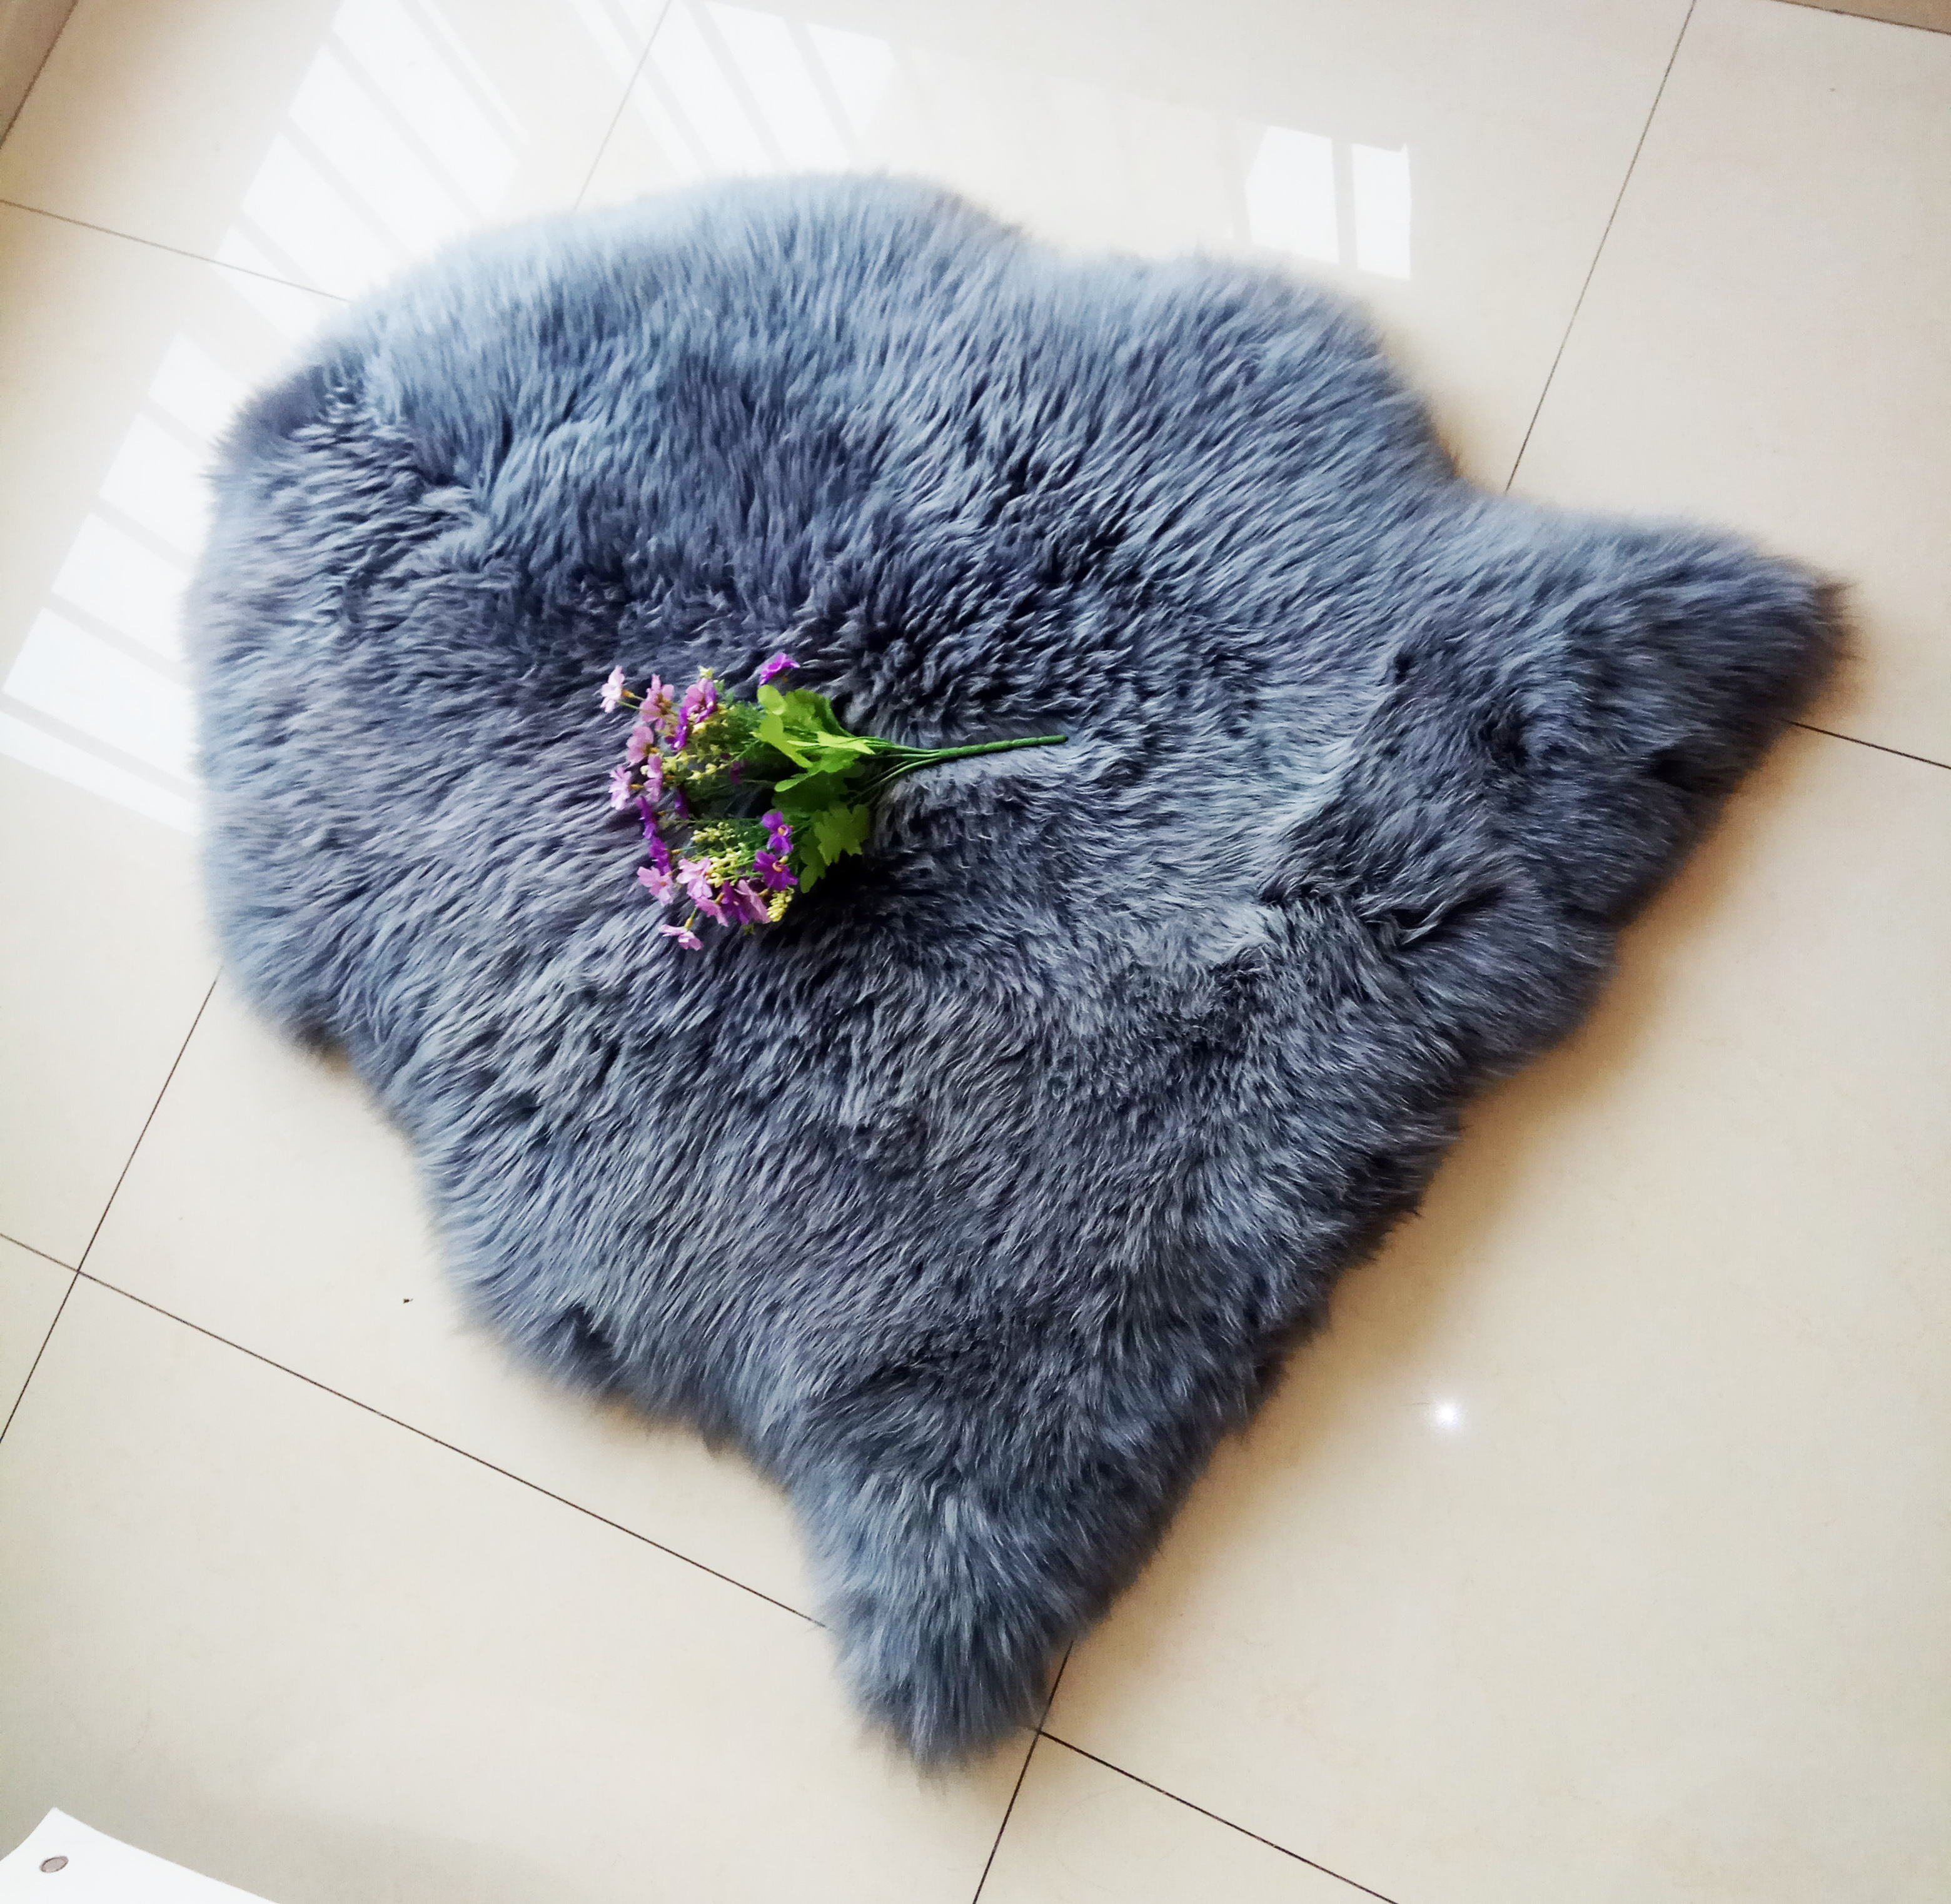 Walk on Me Faux Rabbit Area Rug Plush Fur Skin Sheepskin Suede Hide 100% Polyester Washable Animal Rug Extreme Comfort